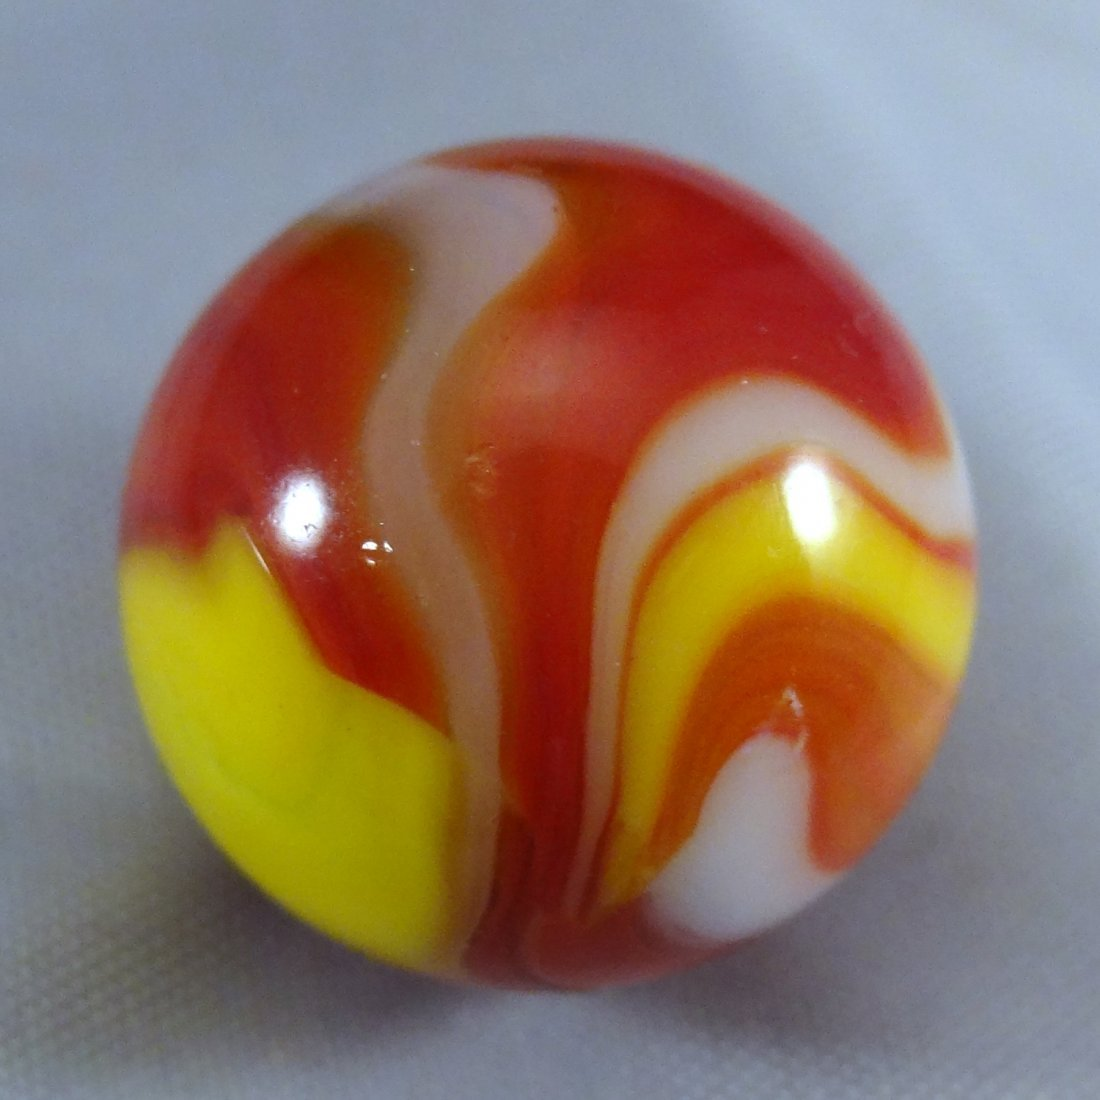 "Lot 41. Peltier Glass. Ketchup and Mustard. 5/8"". M 9.9 - 3"